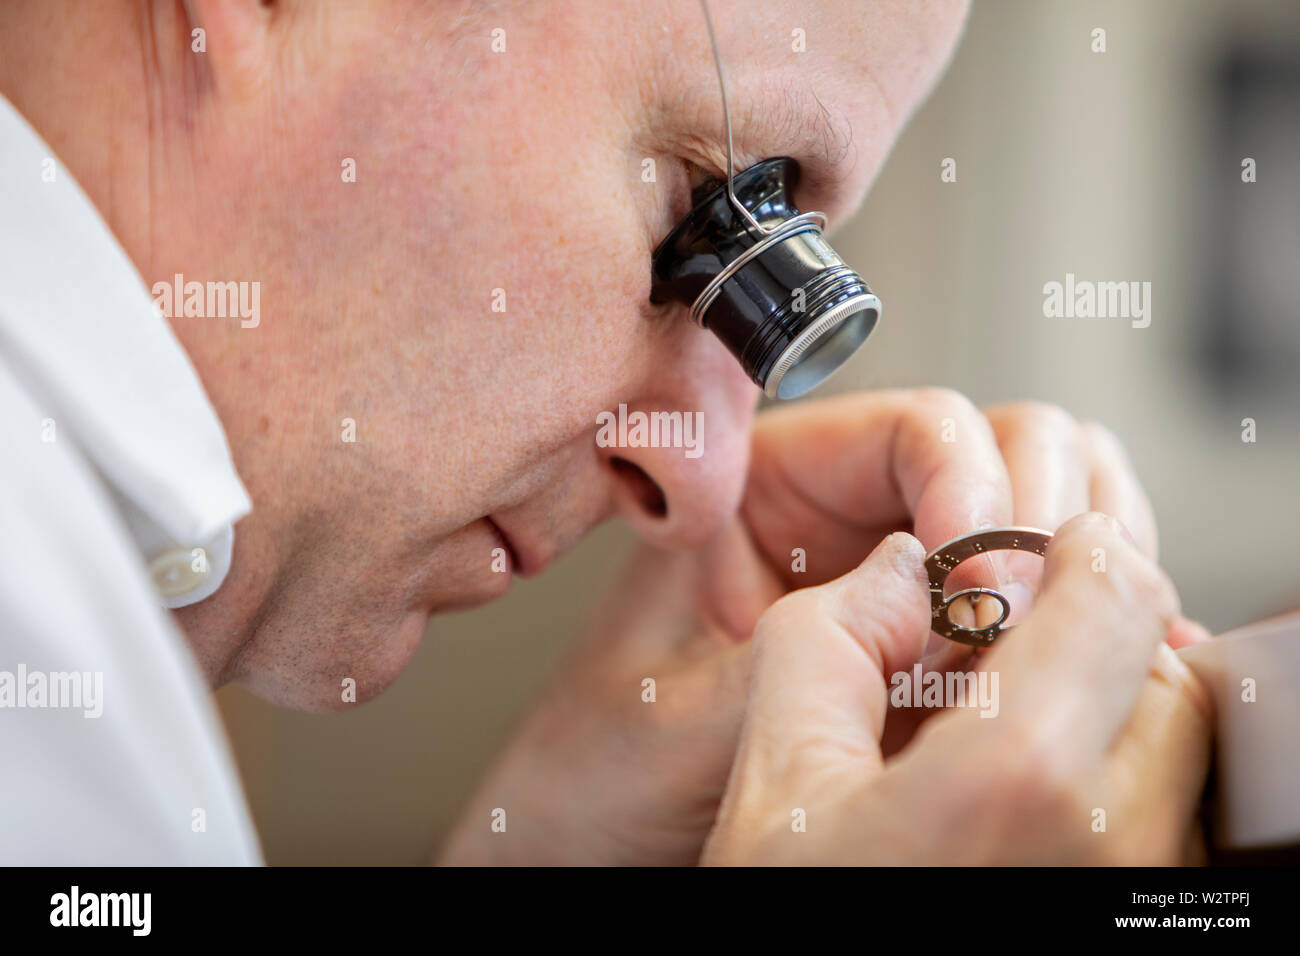 Kari Voutilainen moved from Finland to Switzeland to pursue the art of watchmaking. He is now regarded as one of the best watchmakers in Switzerland. - Stock Image